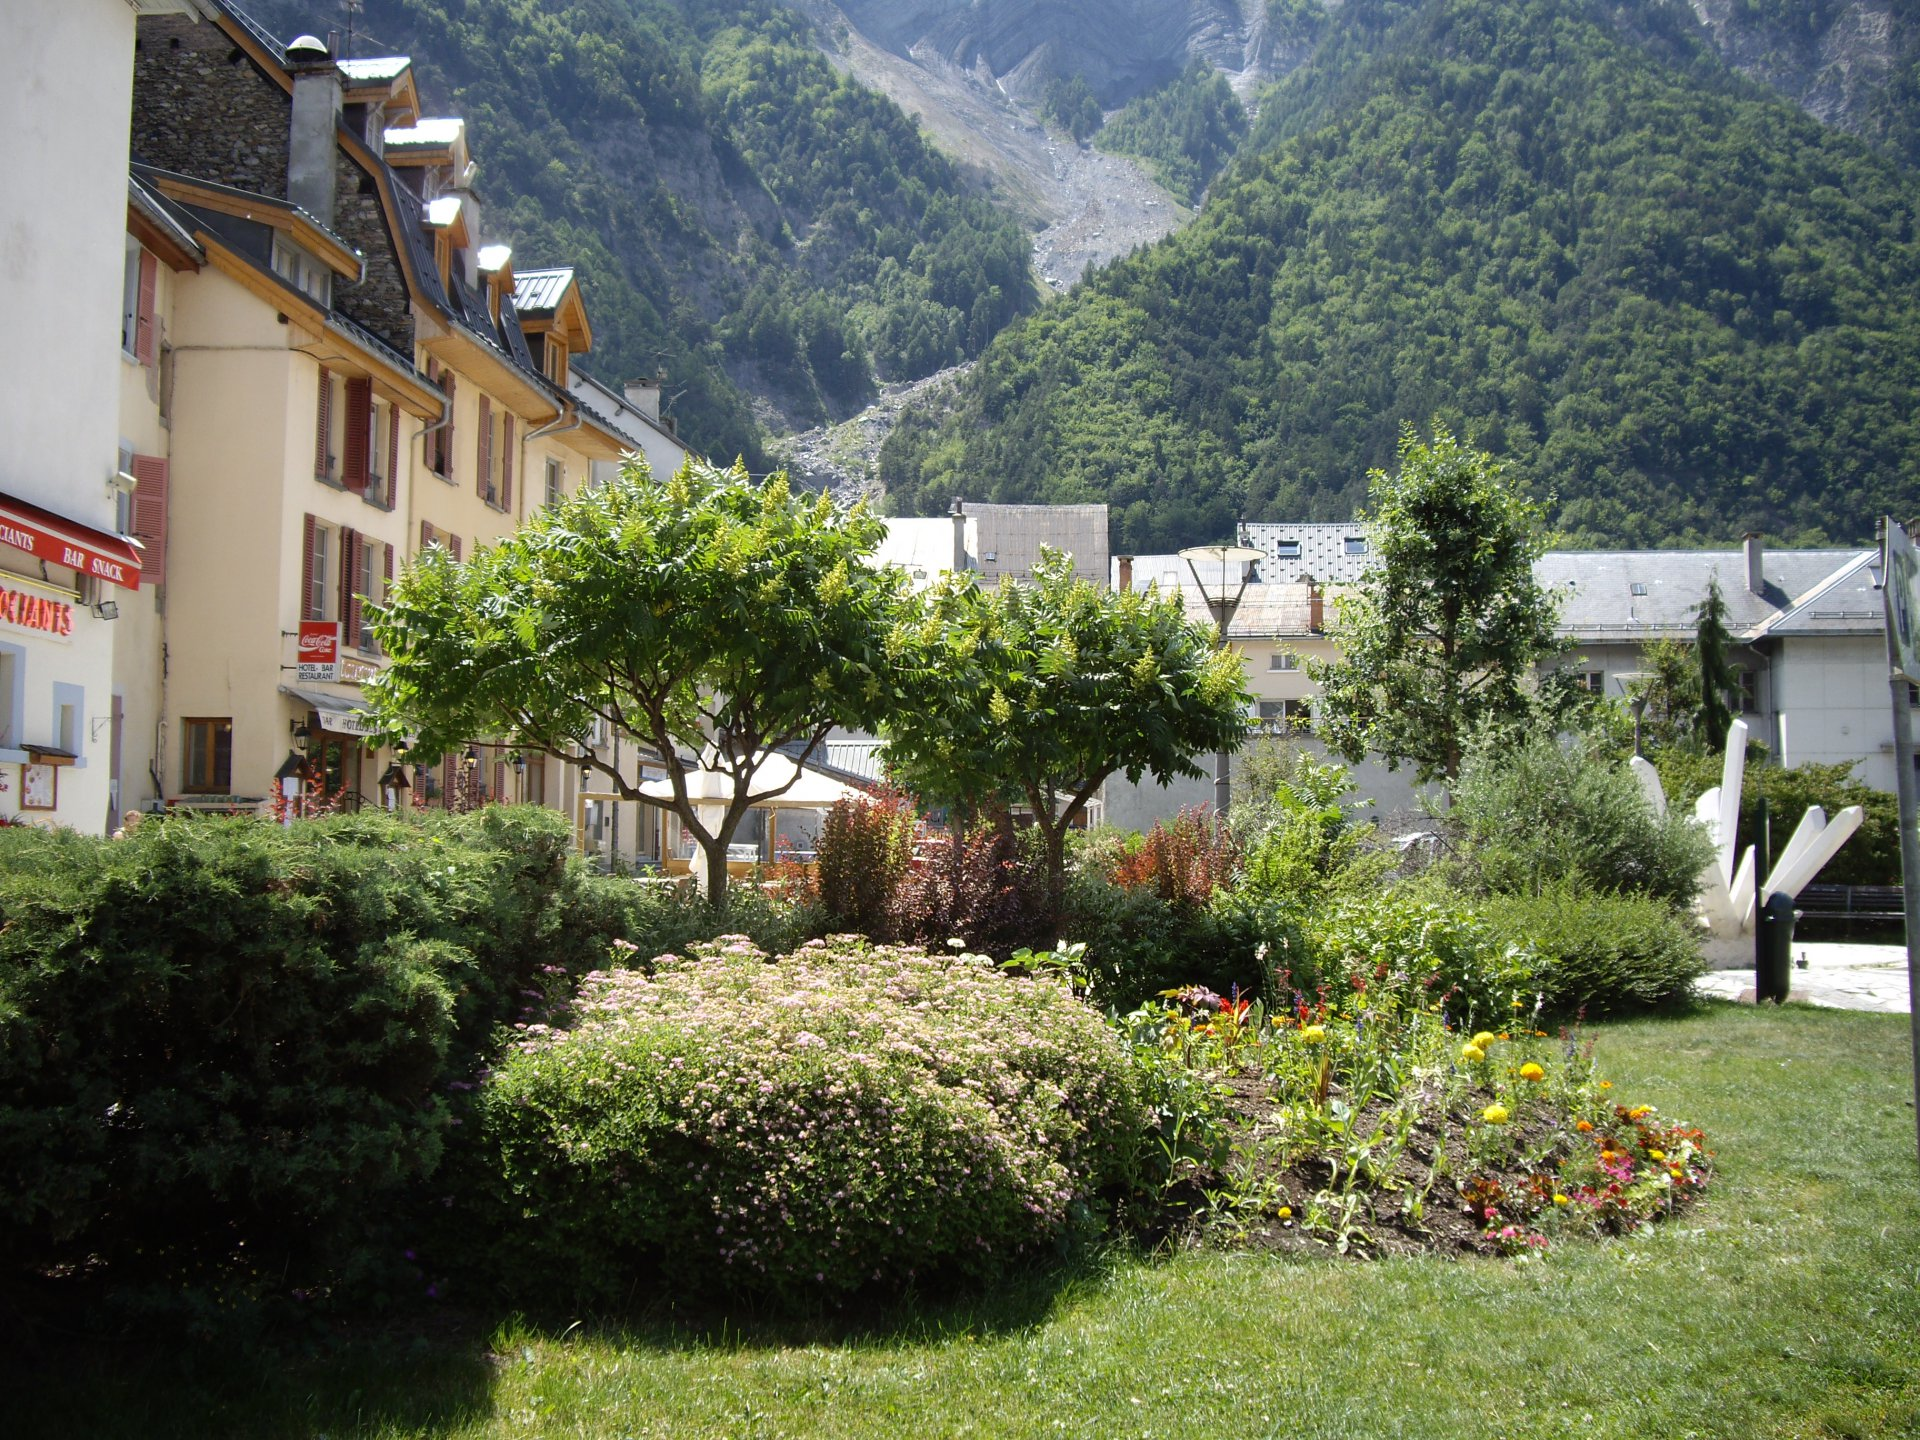 Sale Building land - Le Bourg-d'Oisans